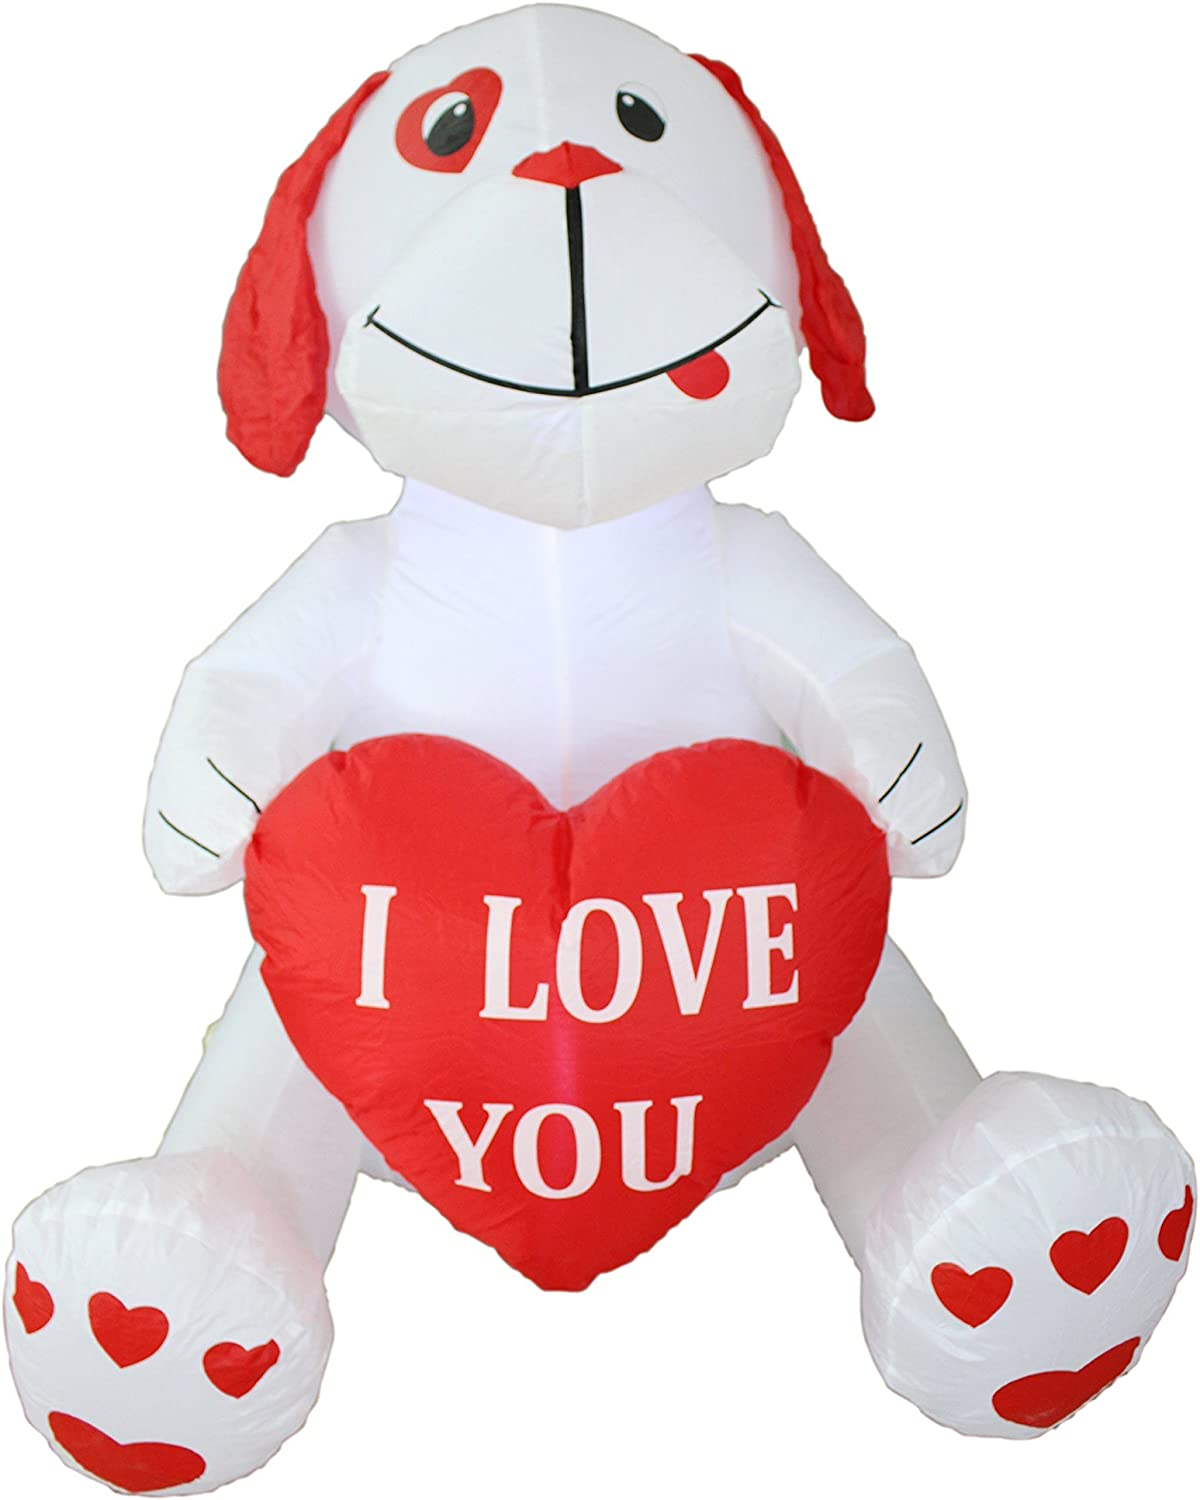 BZB Goods 4 Foot Inflatable Puppy Dog, Great for Anniversary, Wedding and Valentine's Day Party Decoration LED Blow Up Lighted Decor Indoor Outdoor Holiday Art Decor Decorations